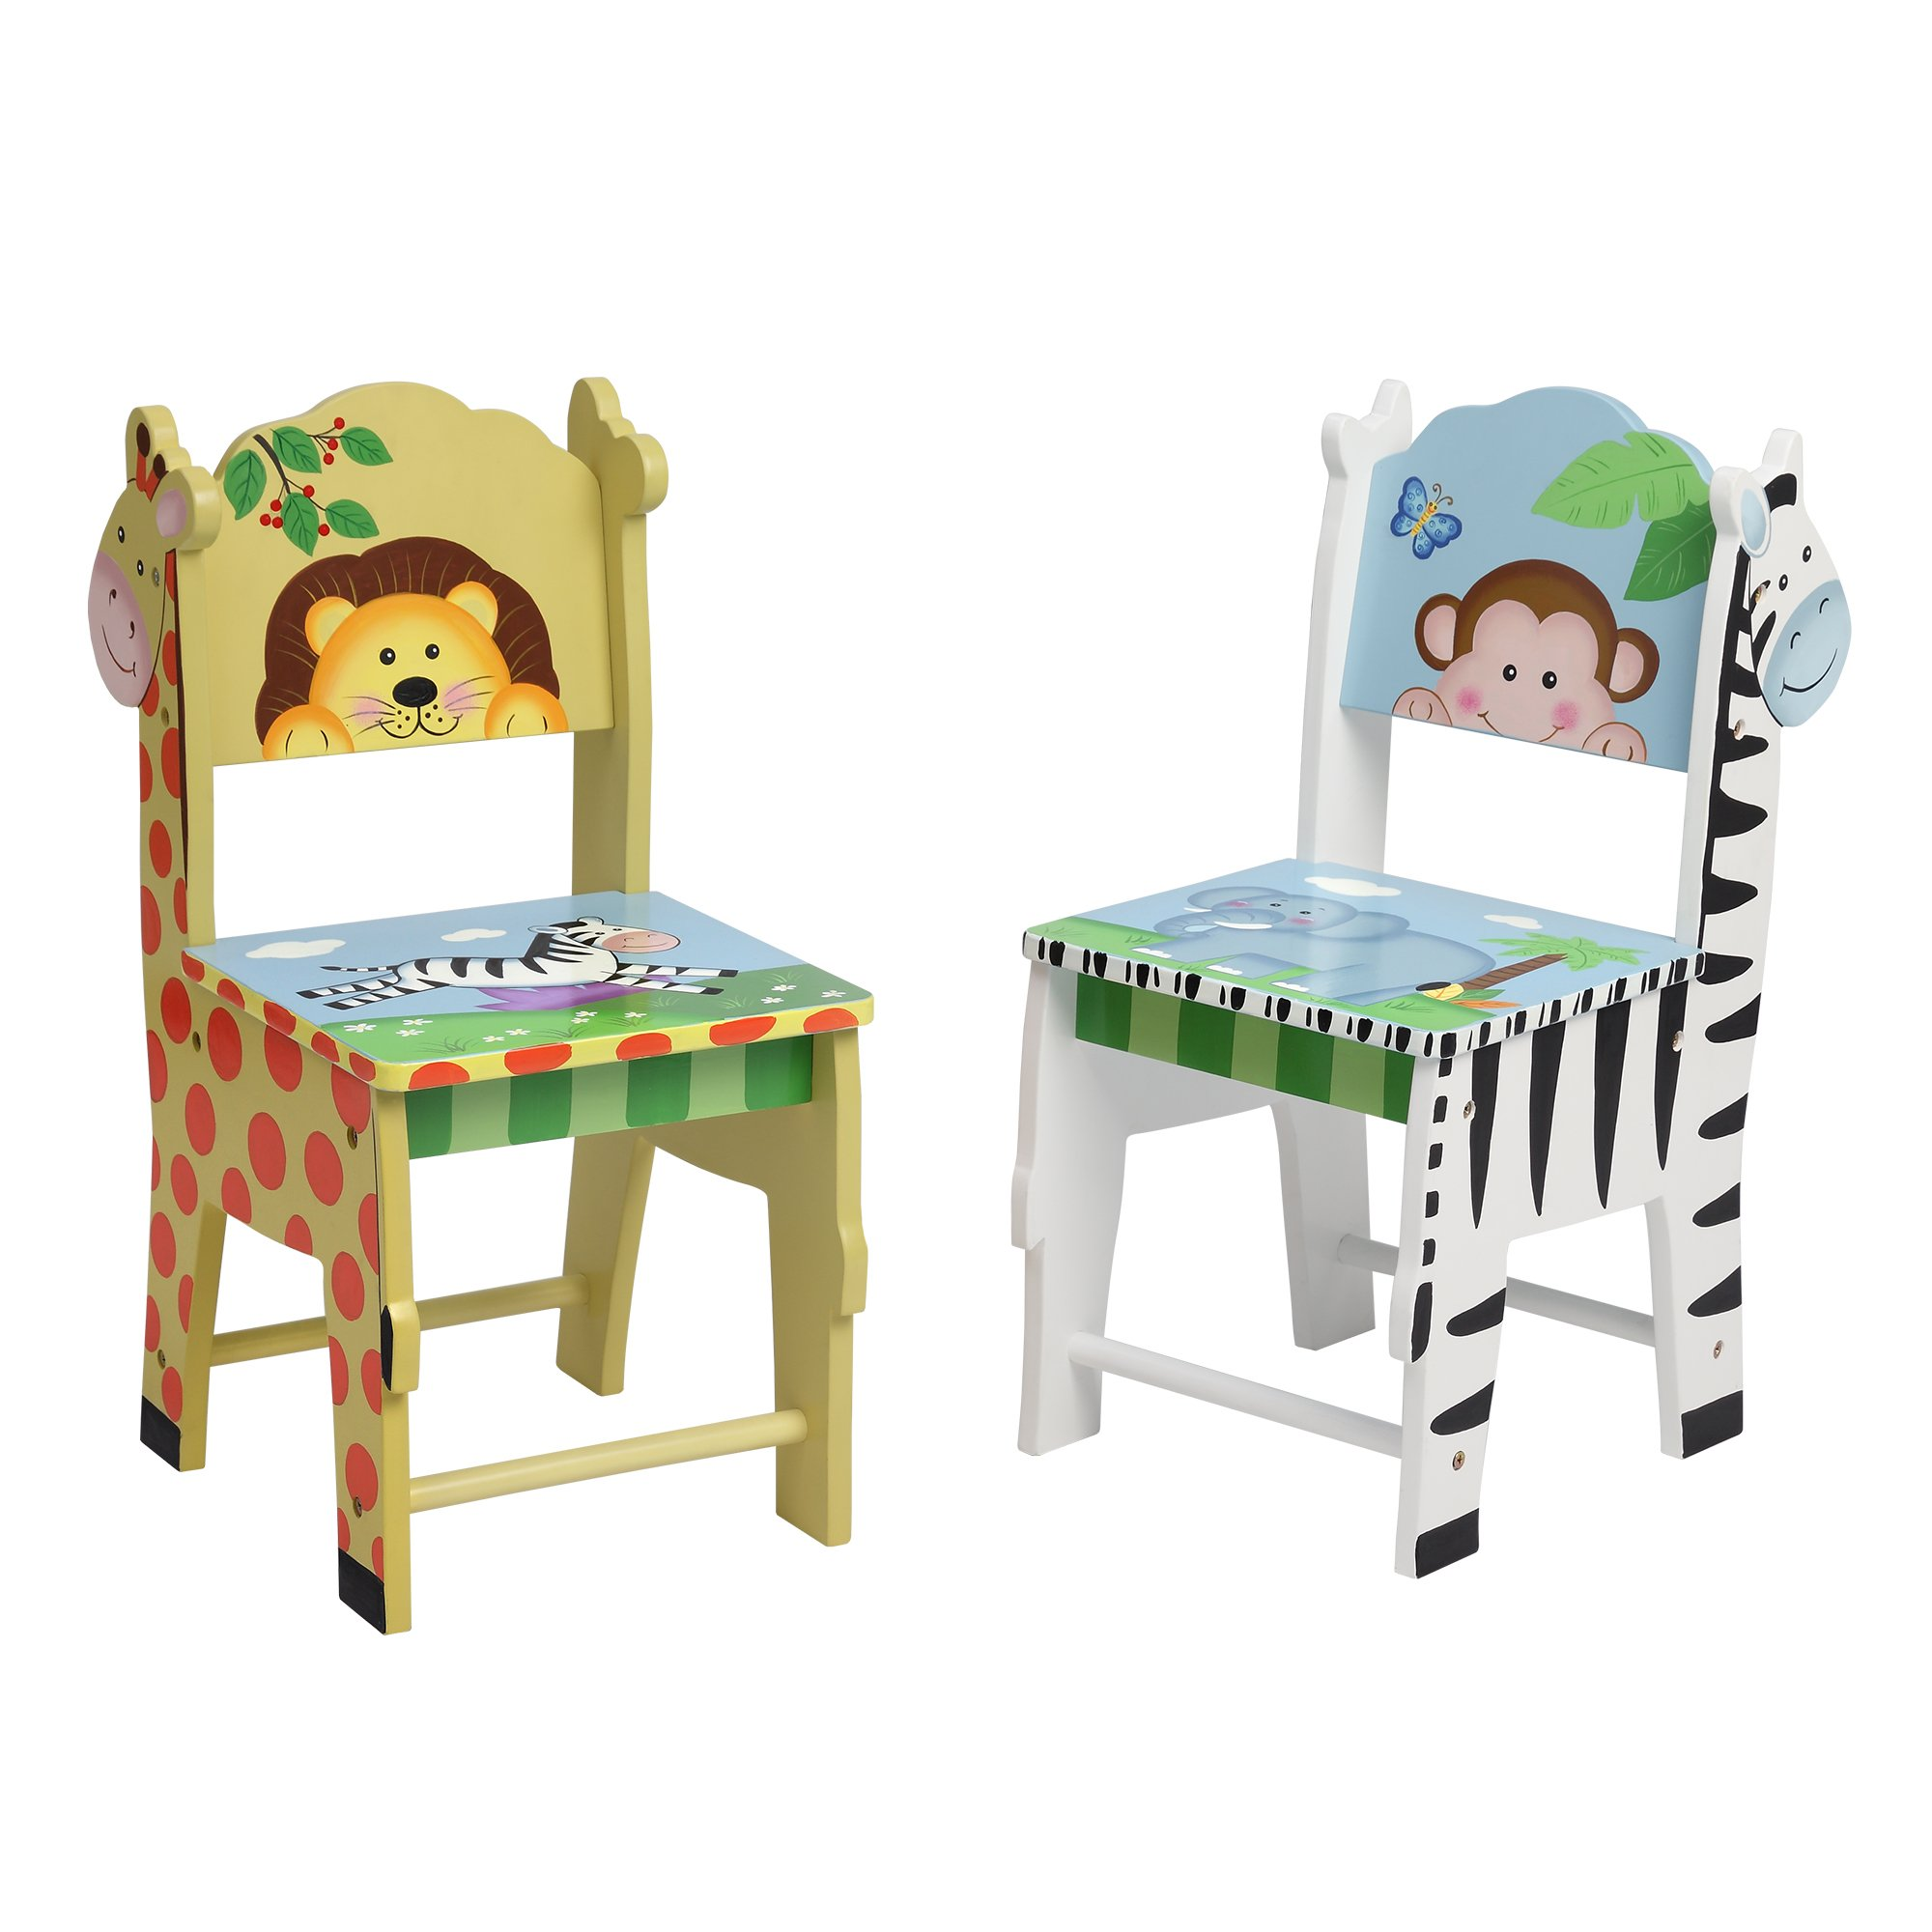 Fantasy Fields TD-0049A2 Sunny Safari Kids Crafted and Hand Painted Wooden Chairs (2 Piece), Yellow and Green, 13'' x 11.5'' x 26.75''